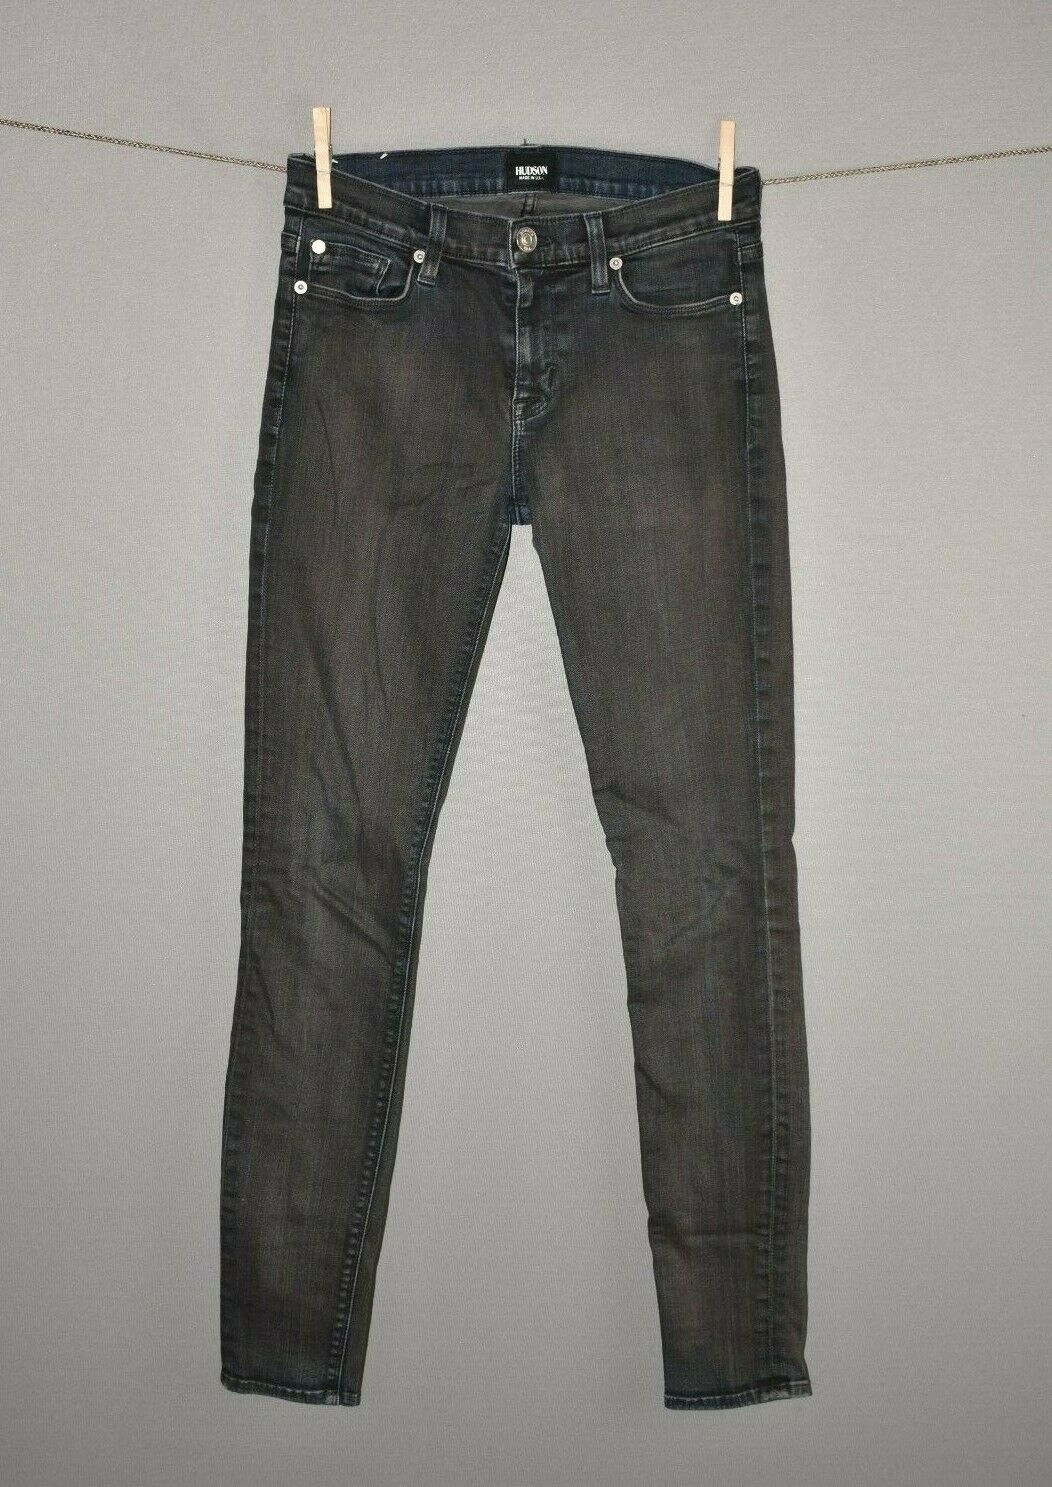 HUDSON JEANS  Nico Super Skinny Mid Rise Jean Ash Brown Size 26